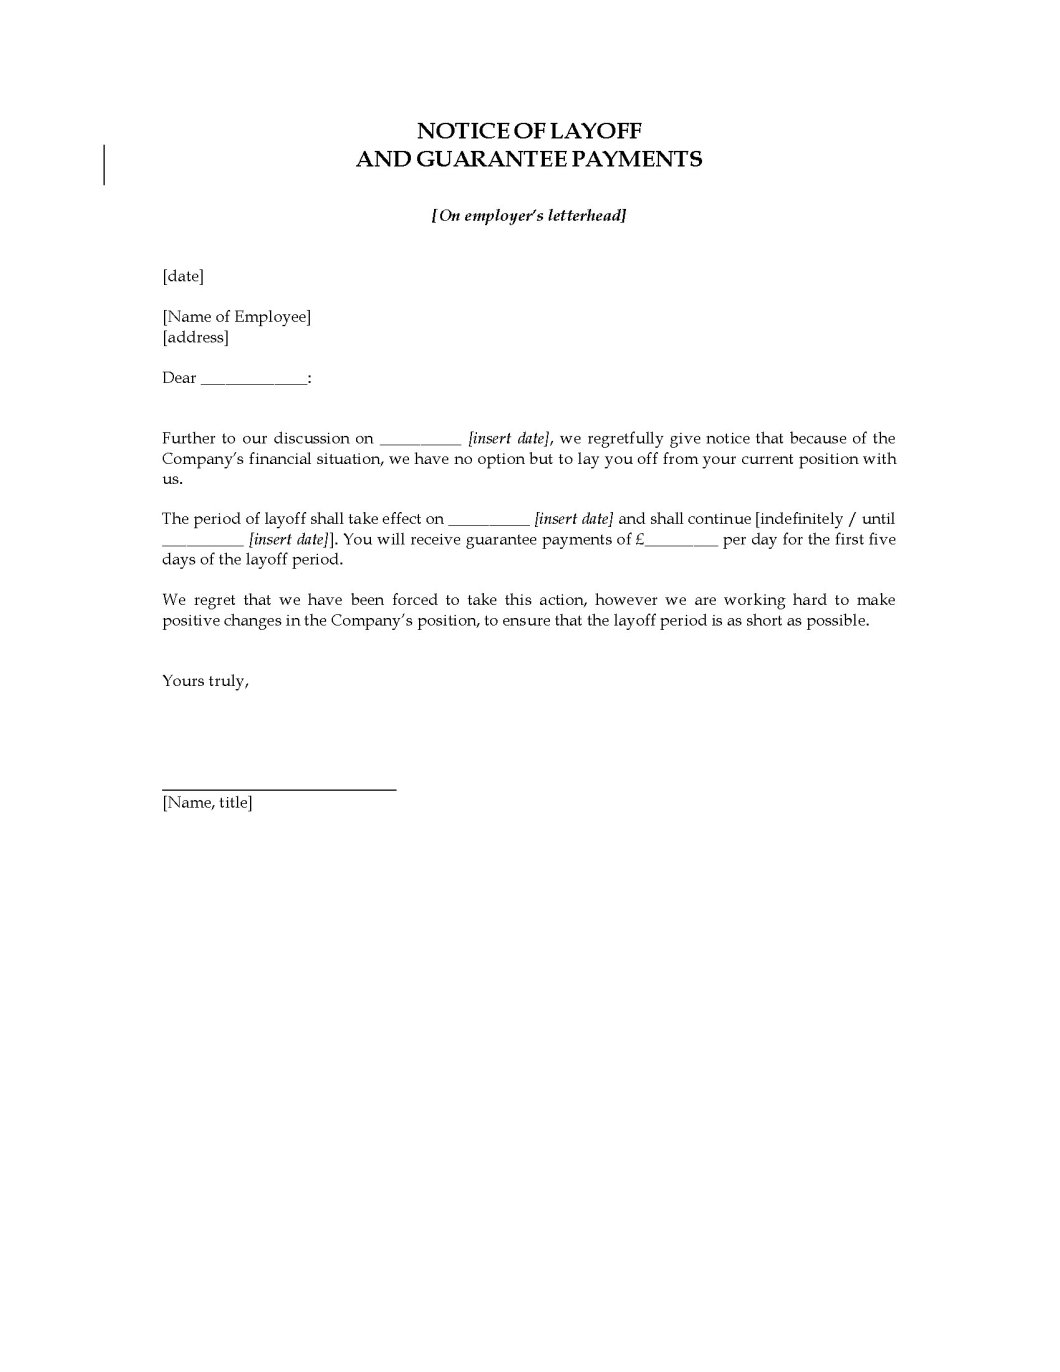 temporary layoff letter sample ontario cekharga blog